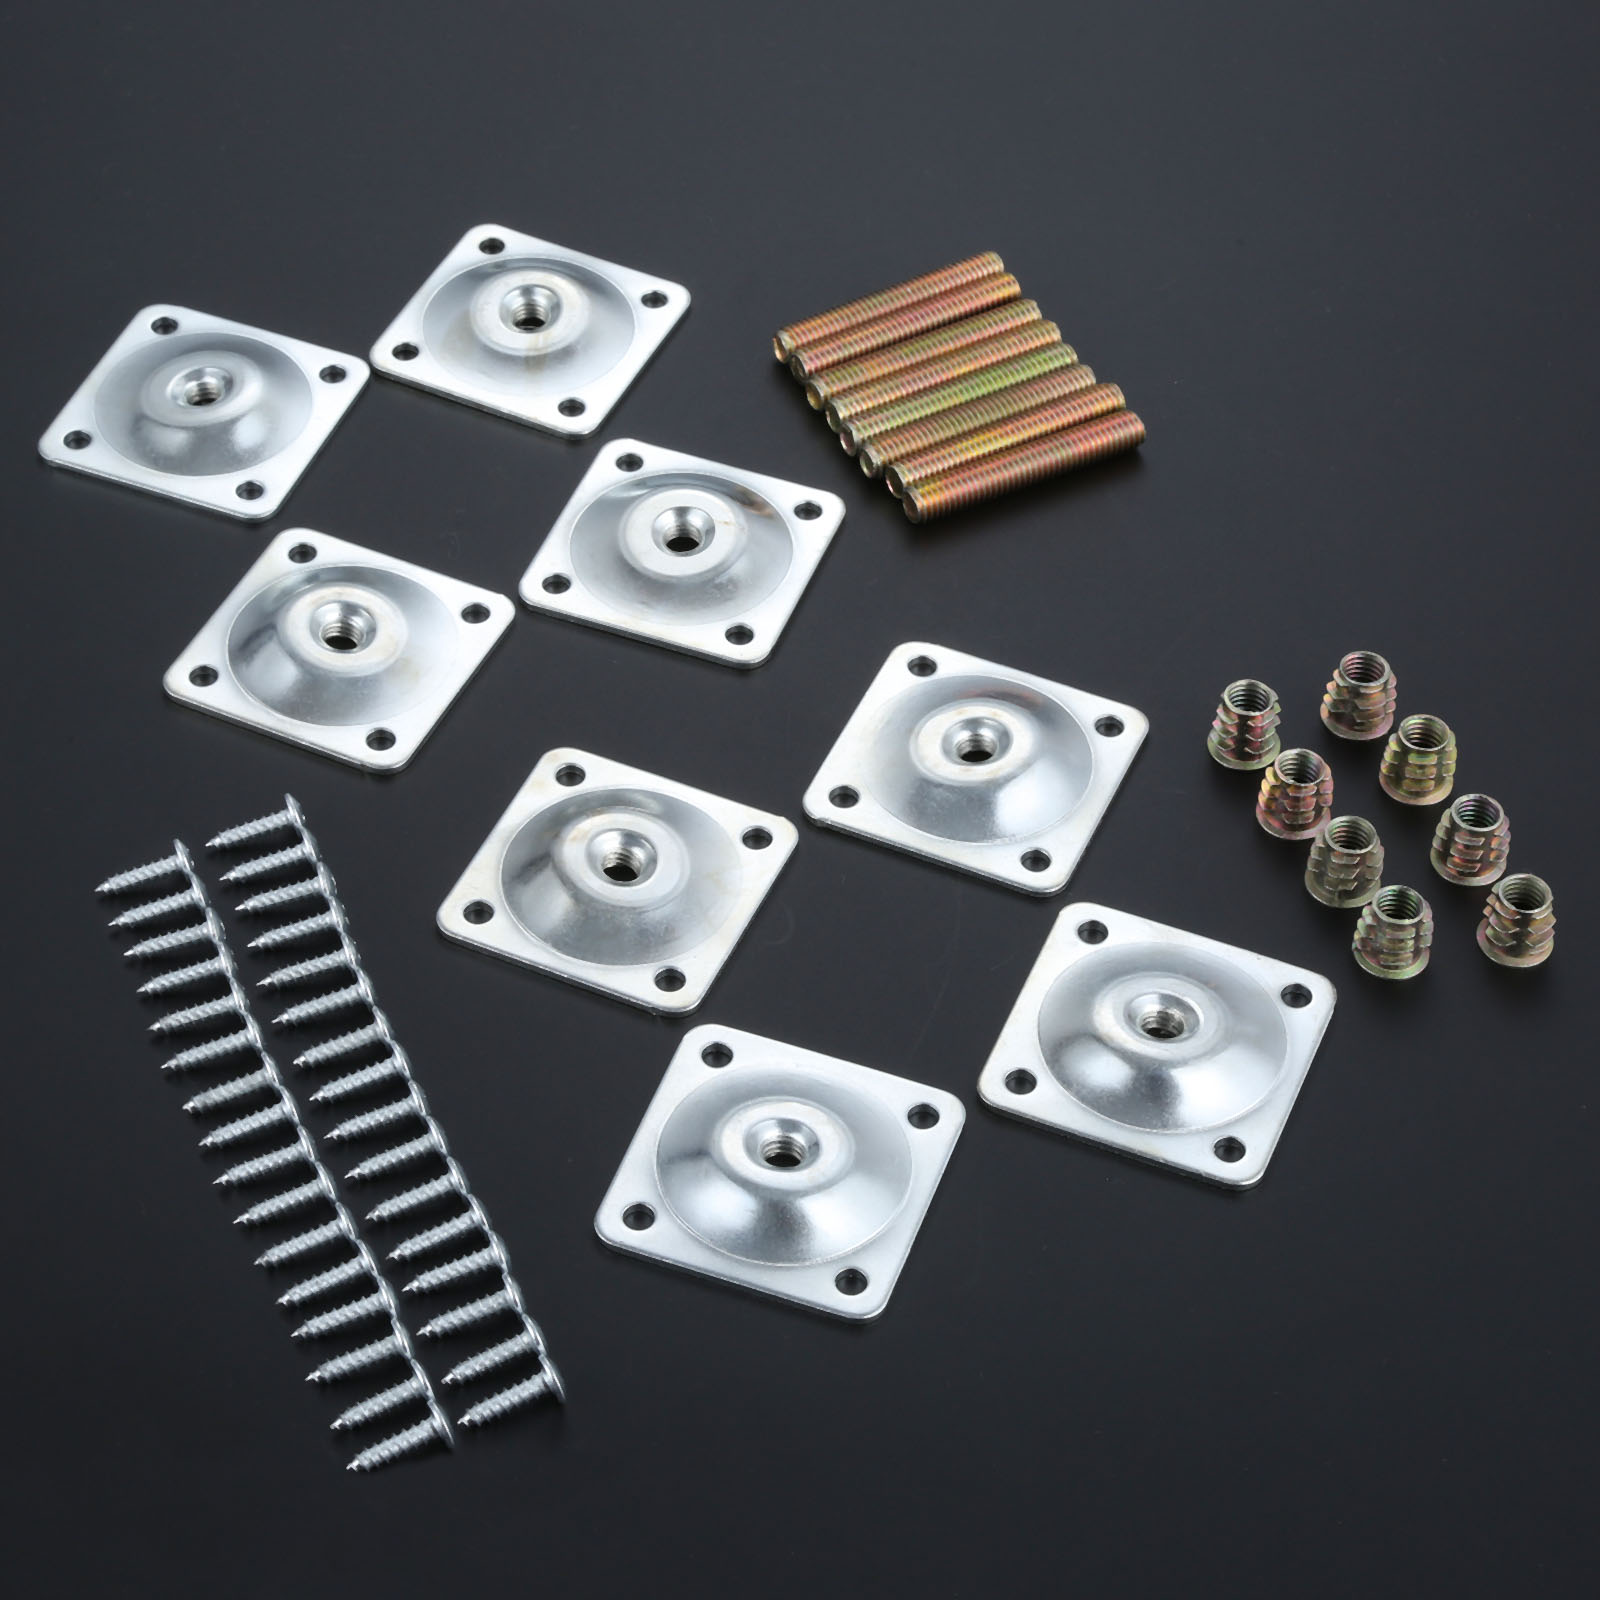 8Pcs Furniture Leg Soft Table Chair Feet Attachment Plates Silver Color Furniture Leg Mounting Plates W/ Bolts Adapters 48x48mm